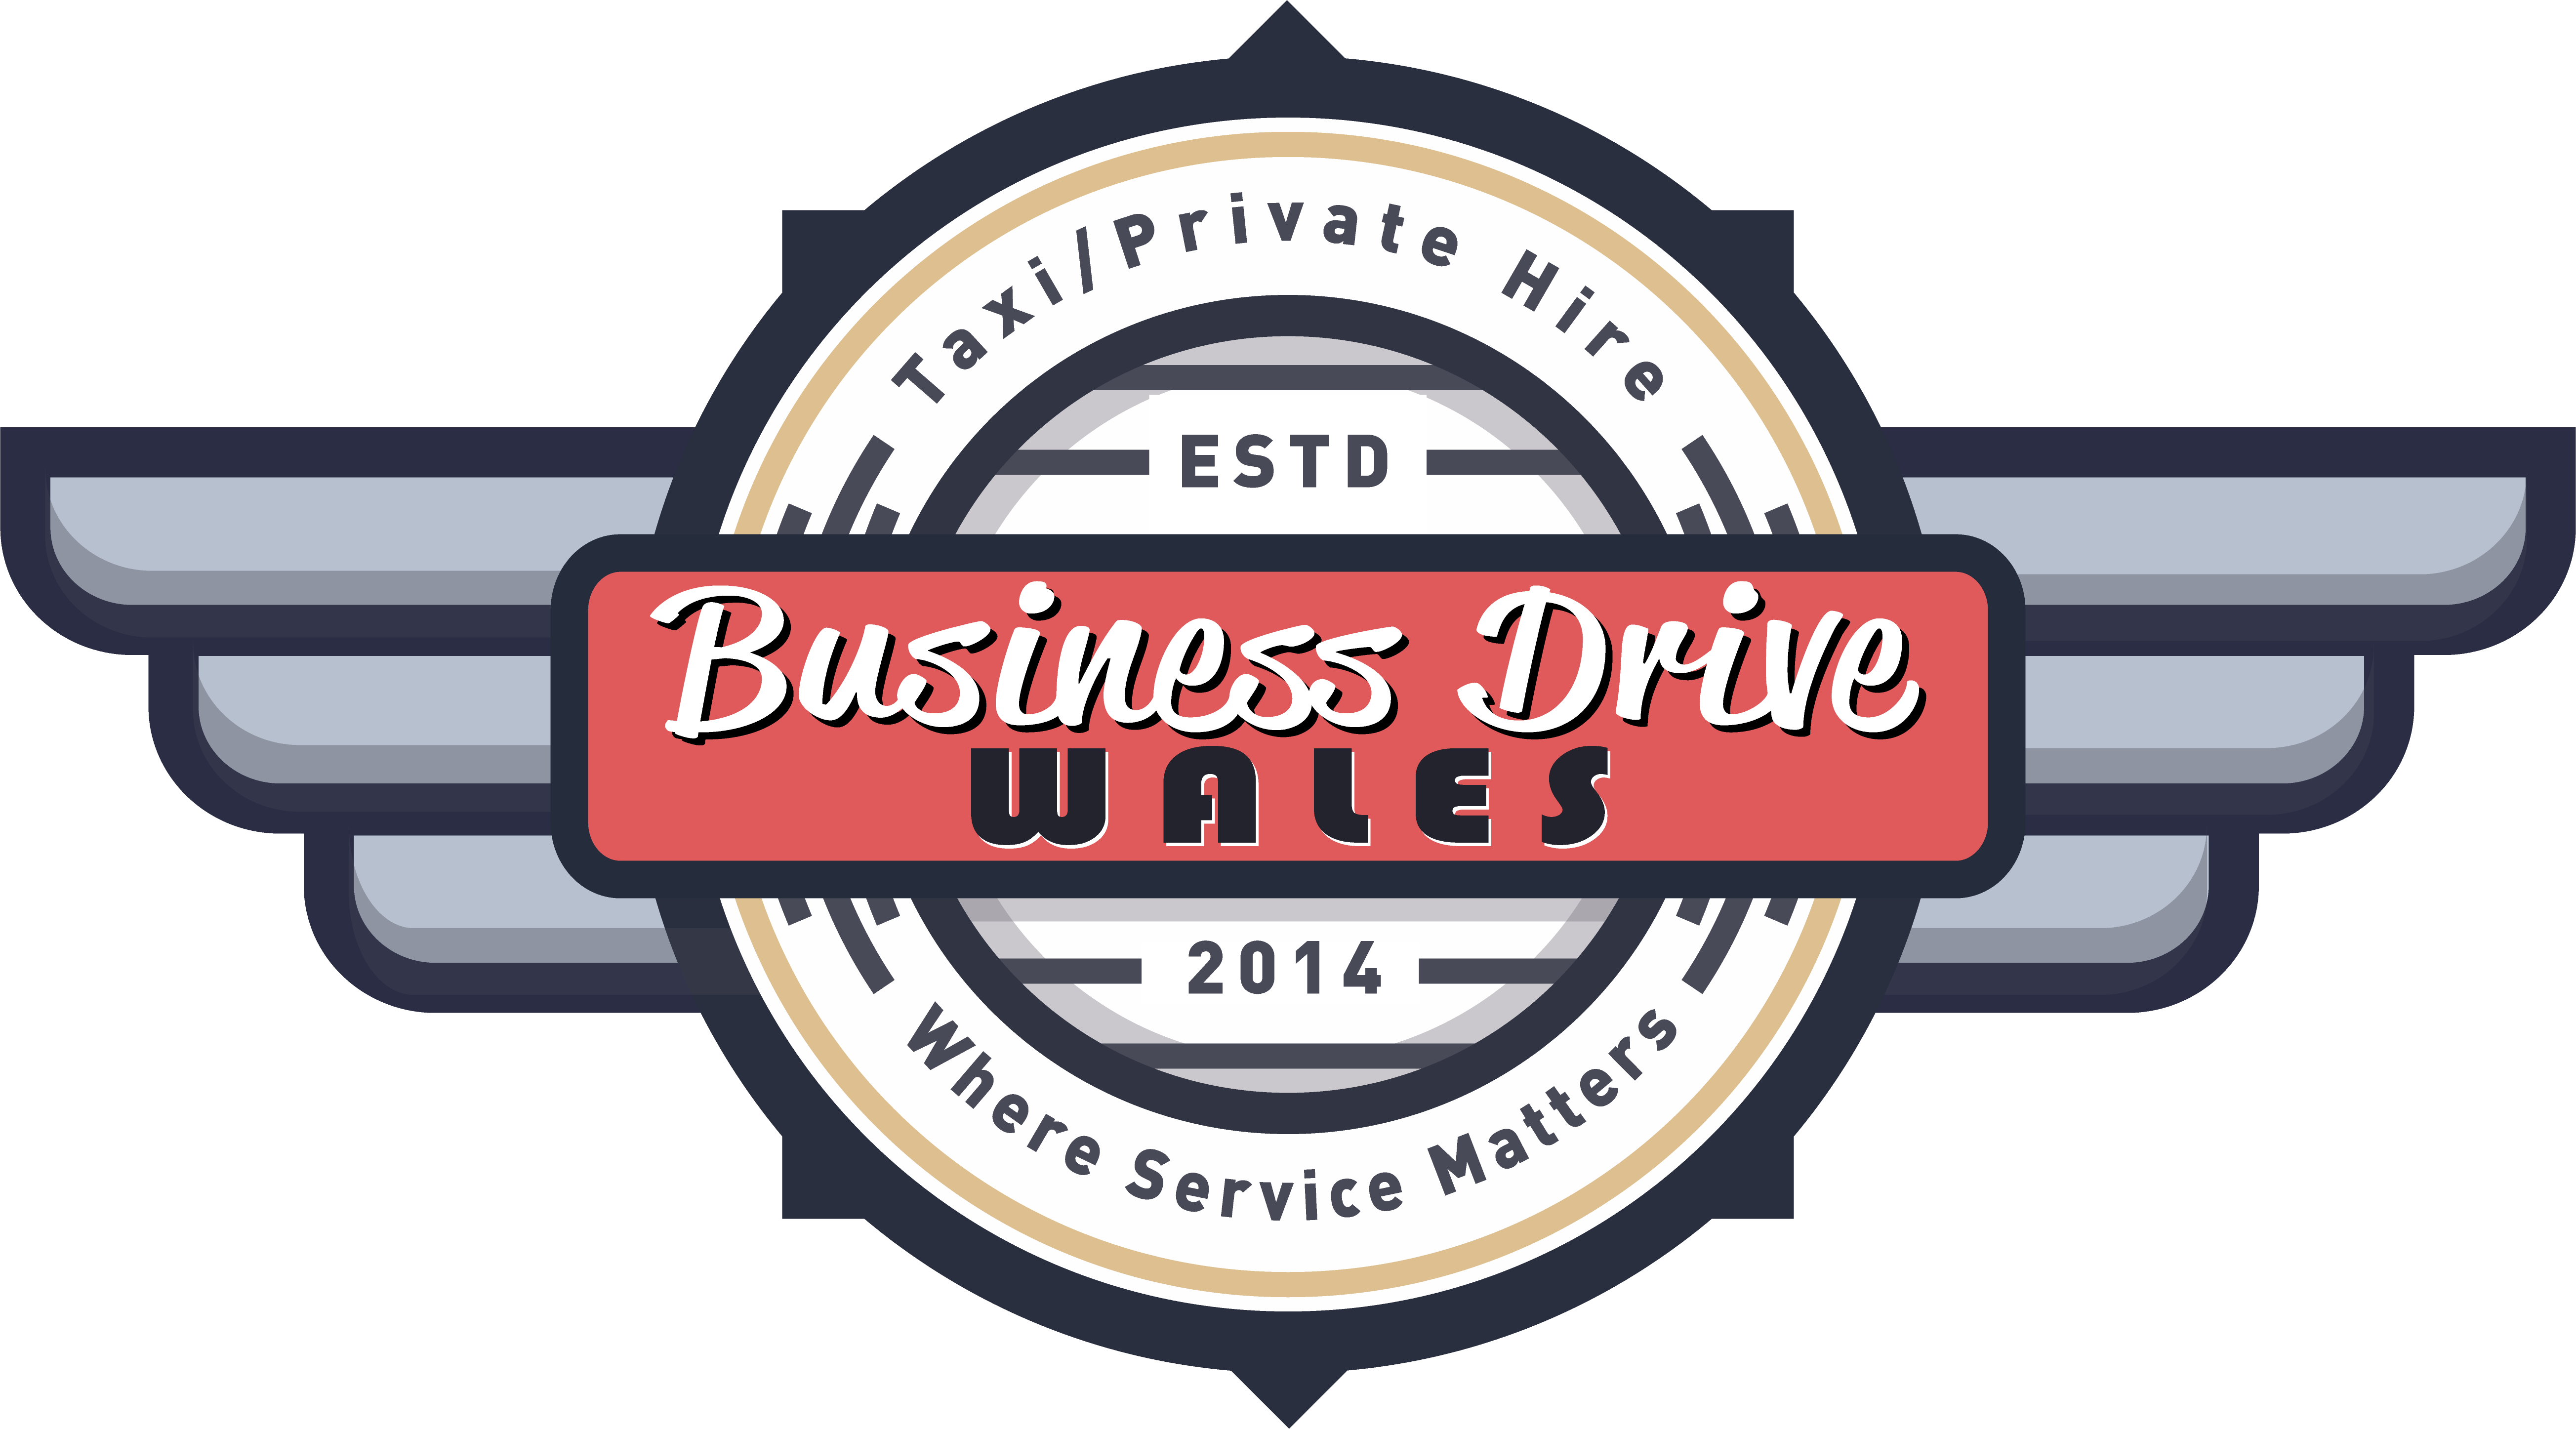 Business Drive Wales